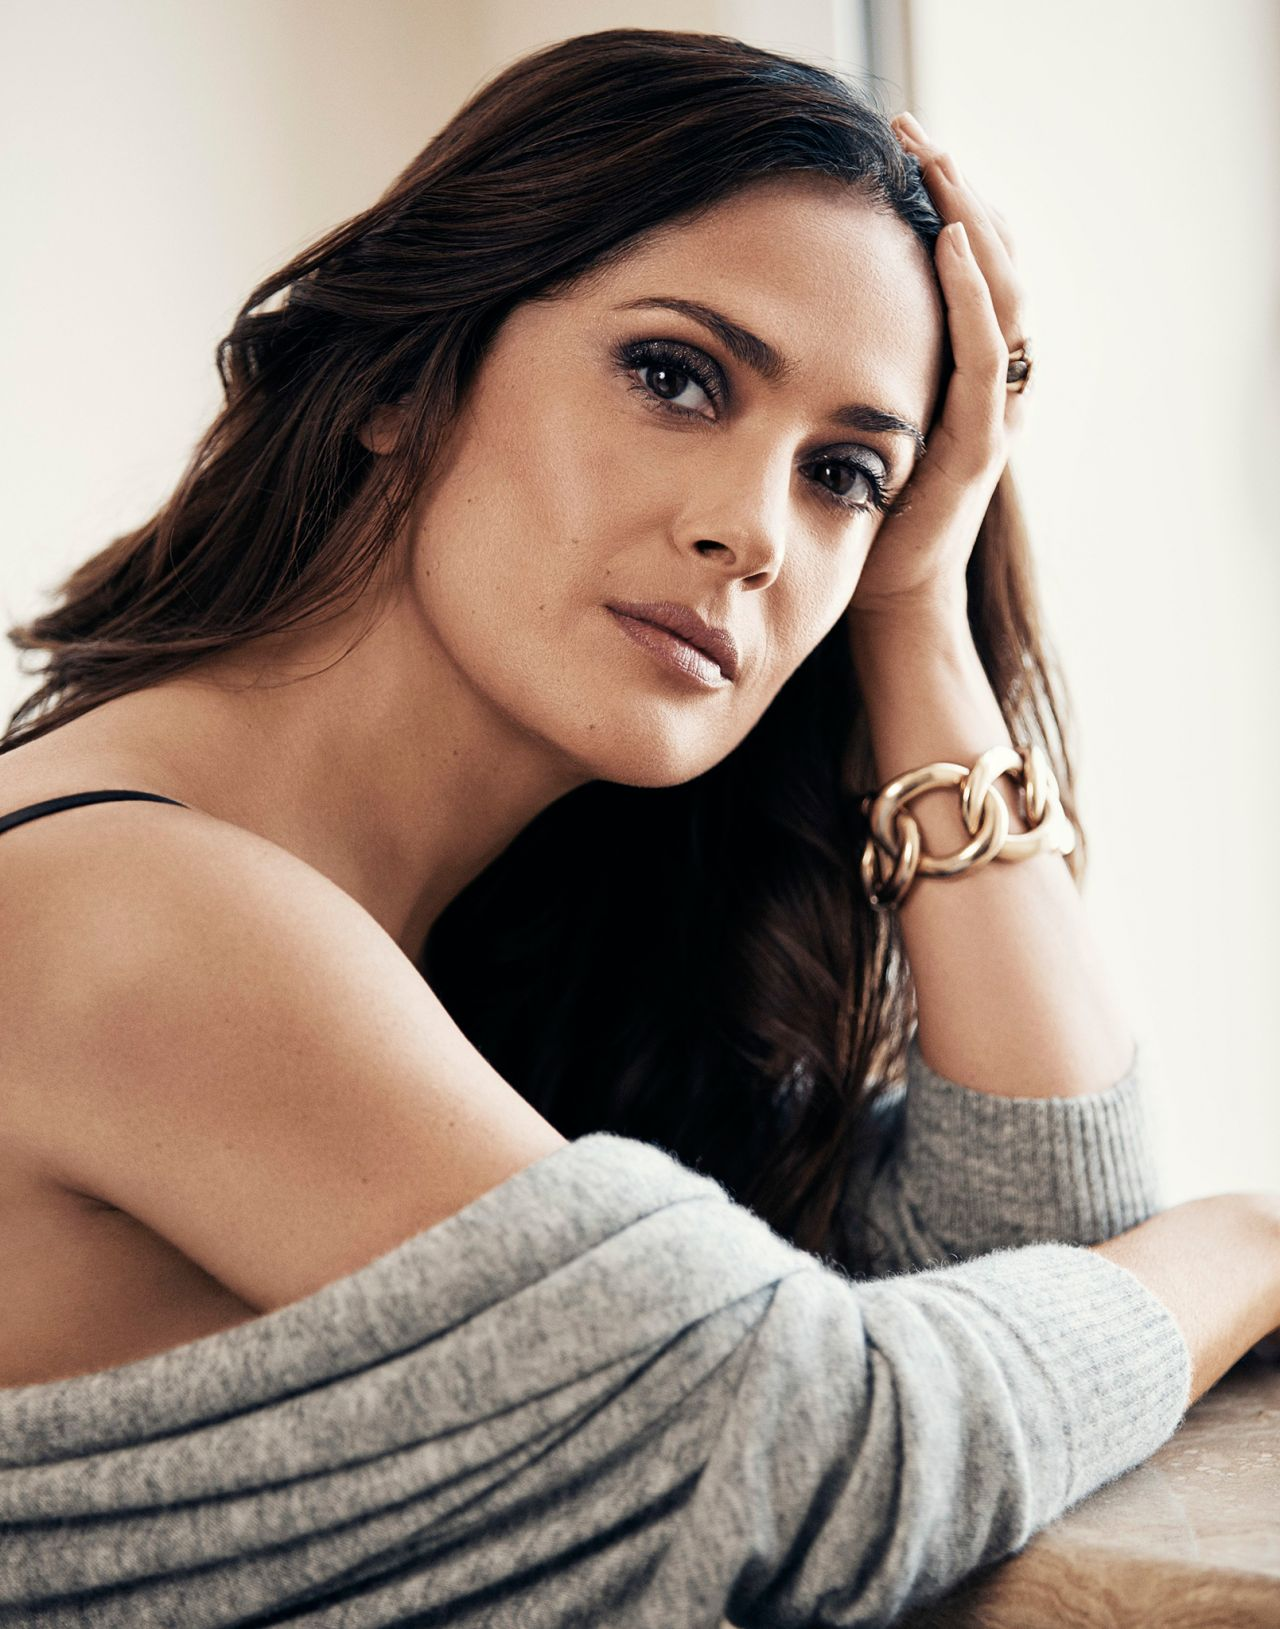 Salma Hayek Photoshoot For Evening Standard Newspaper